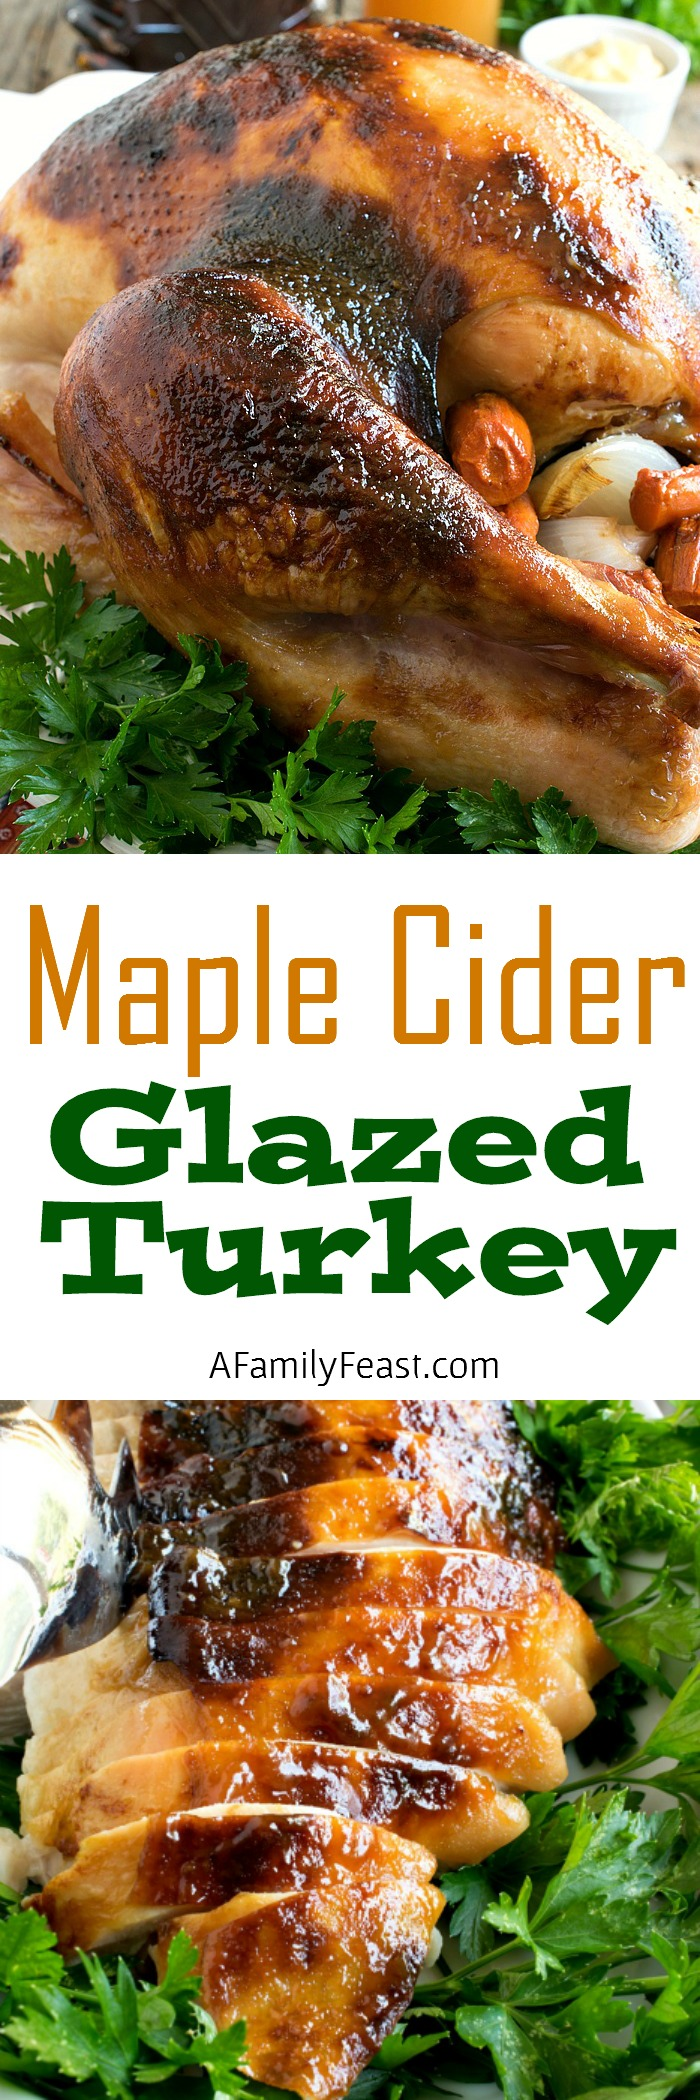 This Maple Cider Glazed Turkey is so delicious it just might become ...